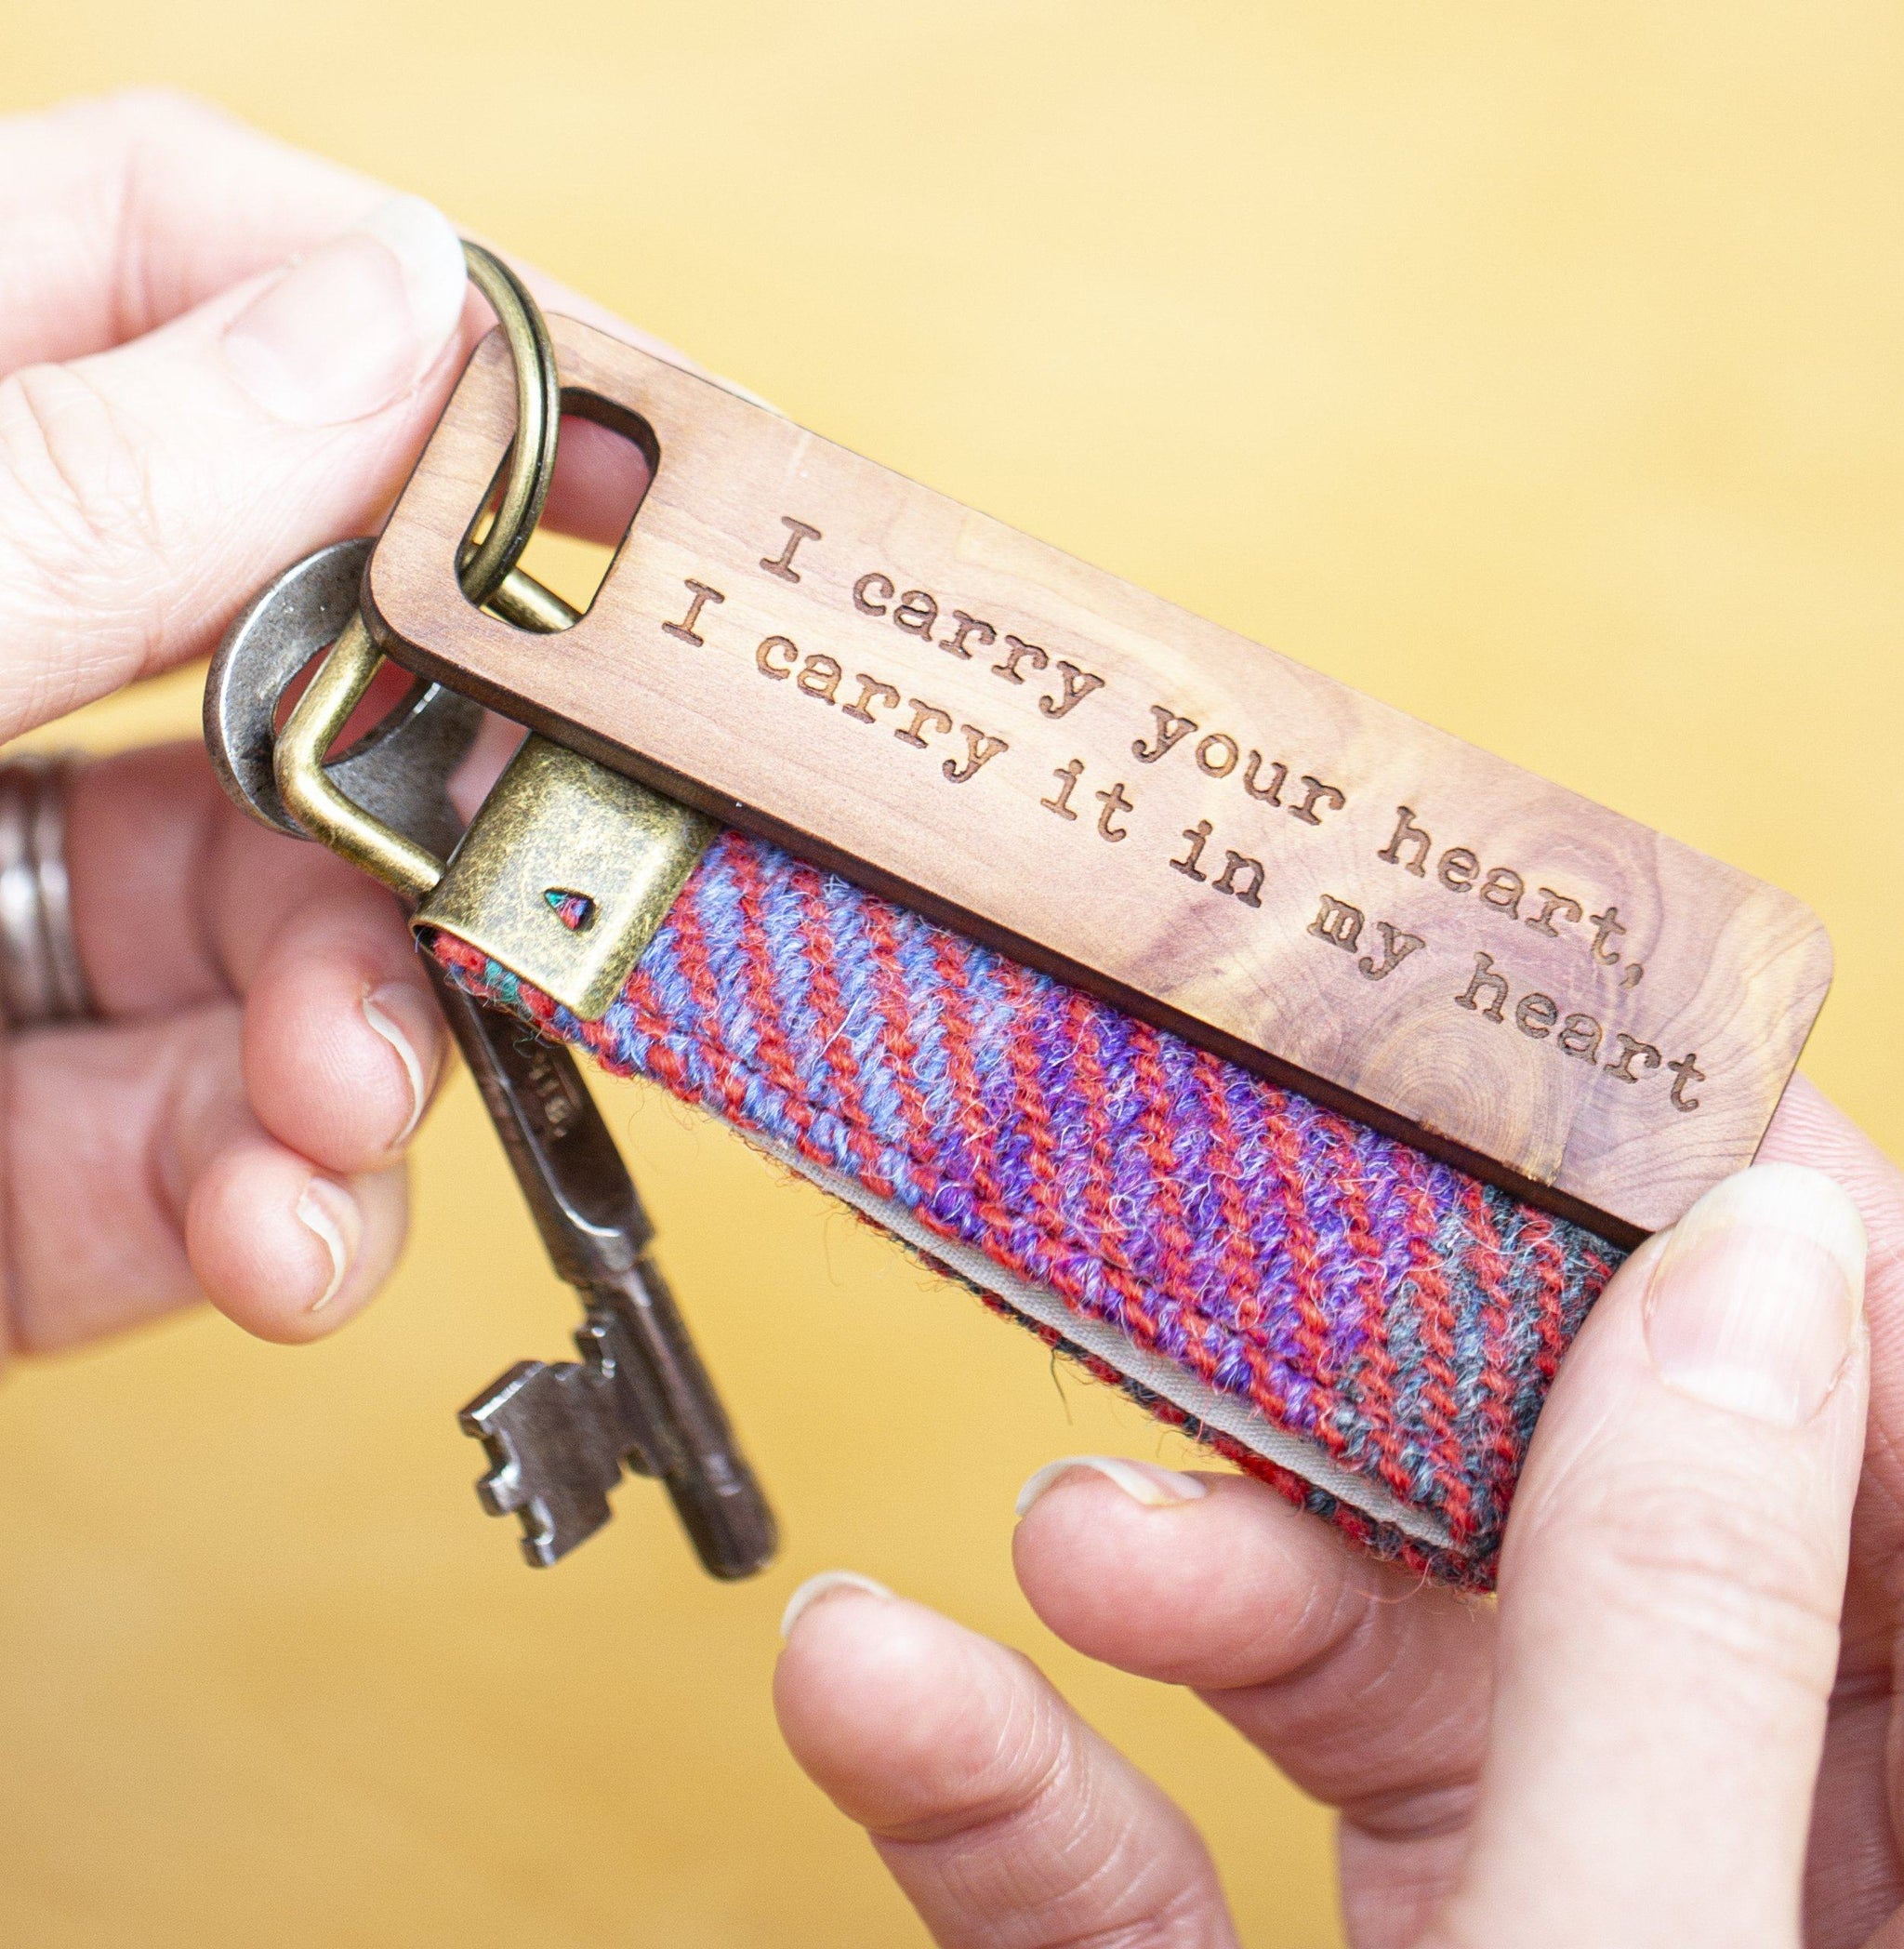 Harris Tweed Personalised Message Keyring with cedarwood token|gift for mum||Mother/'s Day|Keychain